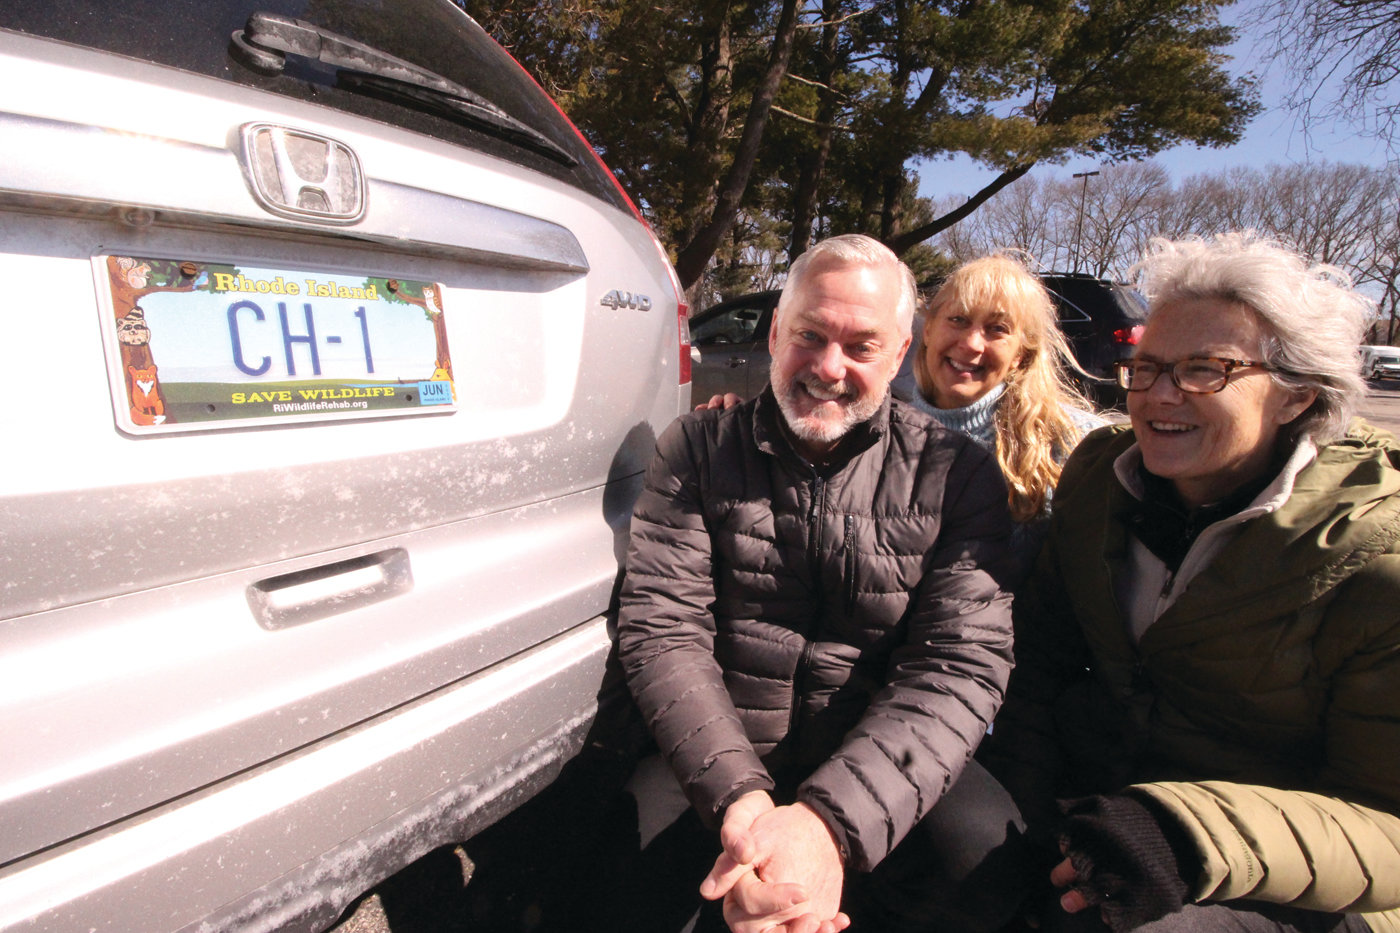 WILD NEW PLATE: As of Saturday, Save Wildlife plates started appearing on cars across Rhode Island. The plate, which has been approved by the General Assembly, benefits the Wildlife Rehabilitators Association of Rhode Island. Pictured with Chuck Hollis of the Division of Motor Vehicles, who ordered a plate for his car, are WRARI executive director Kristin Fletcher and board chair Dr. Lucy Spelman.